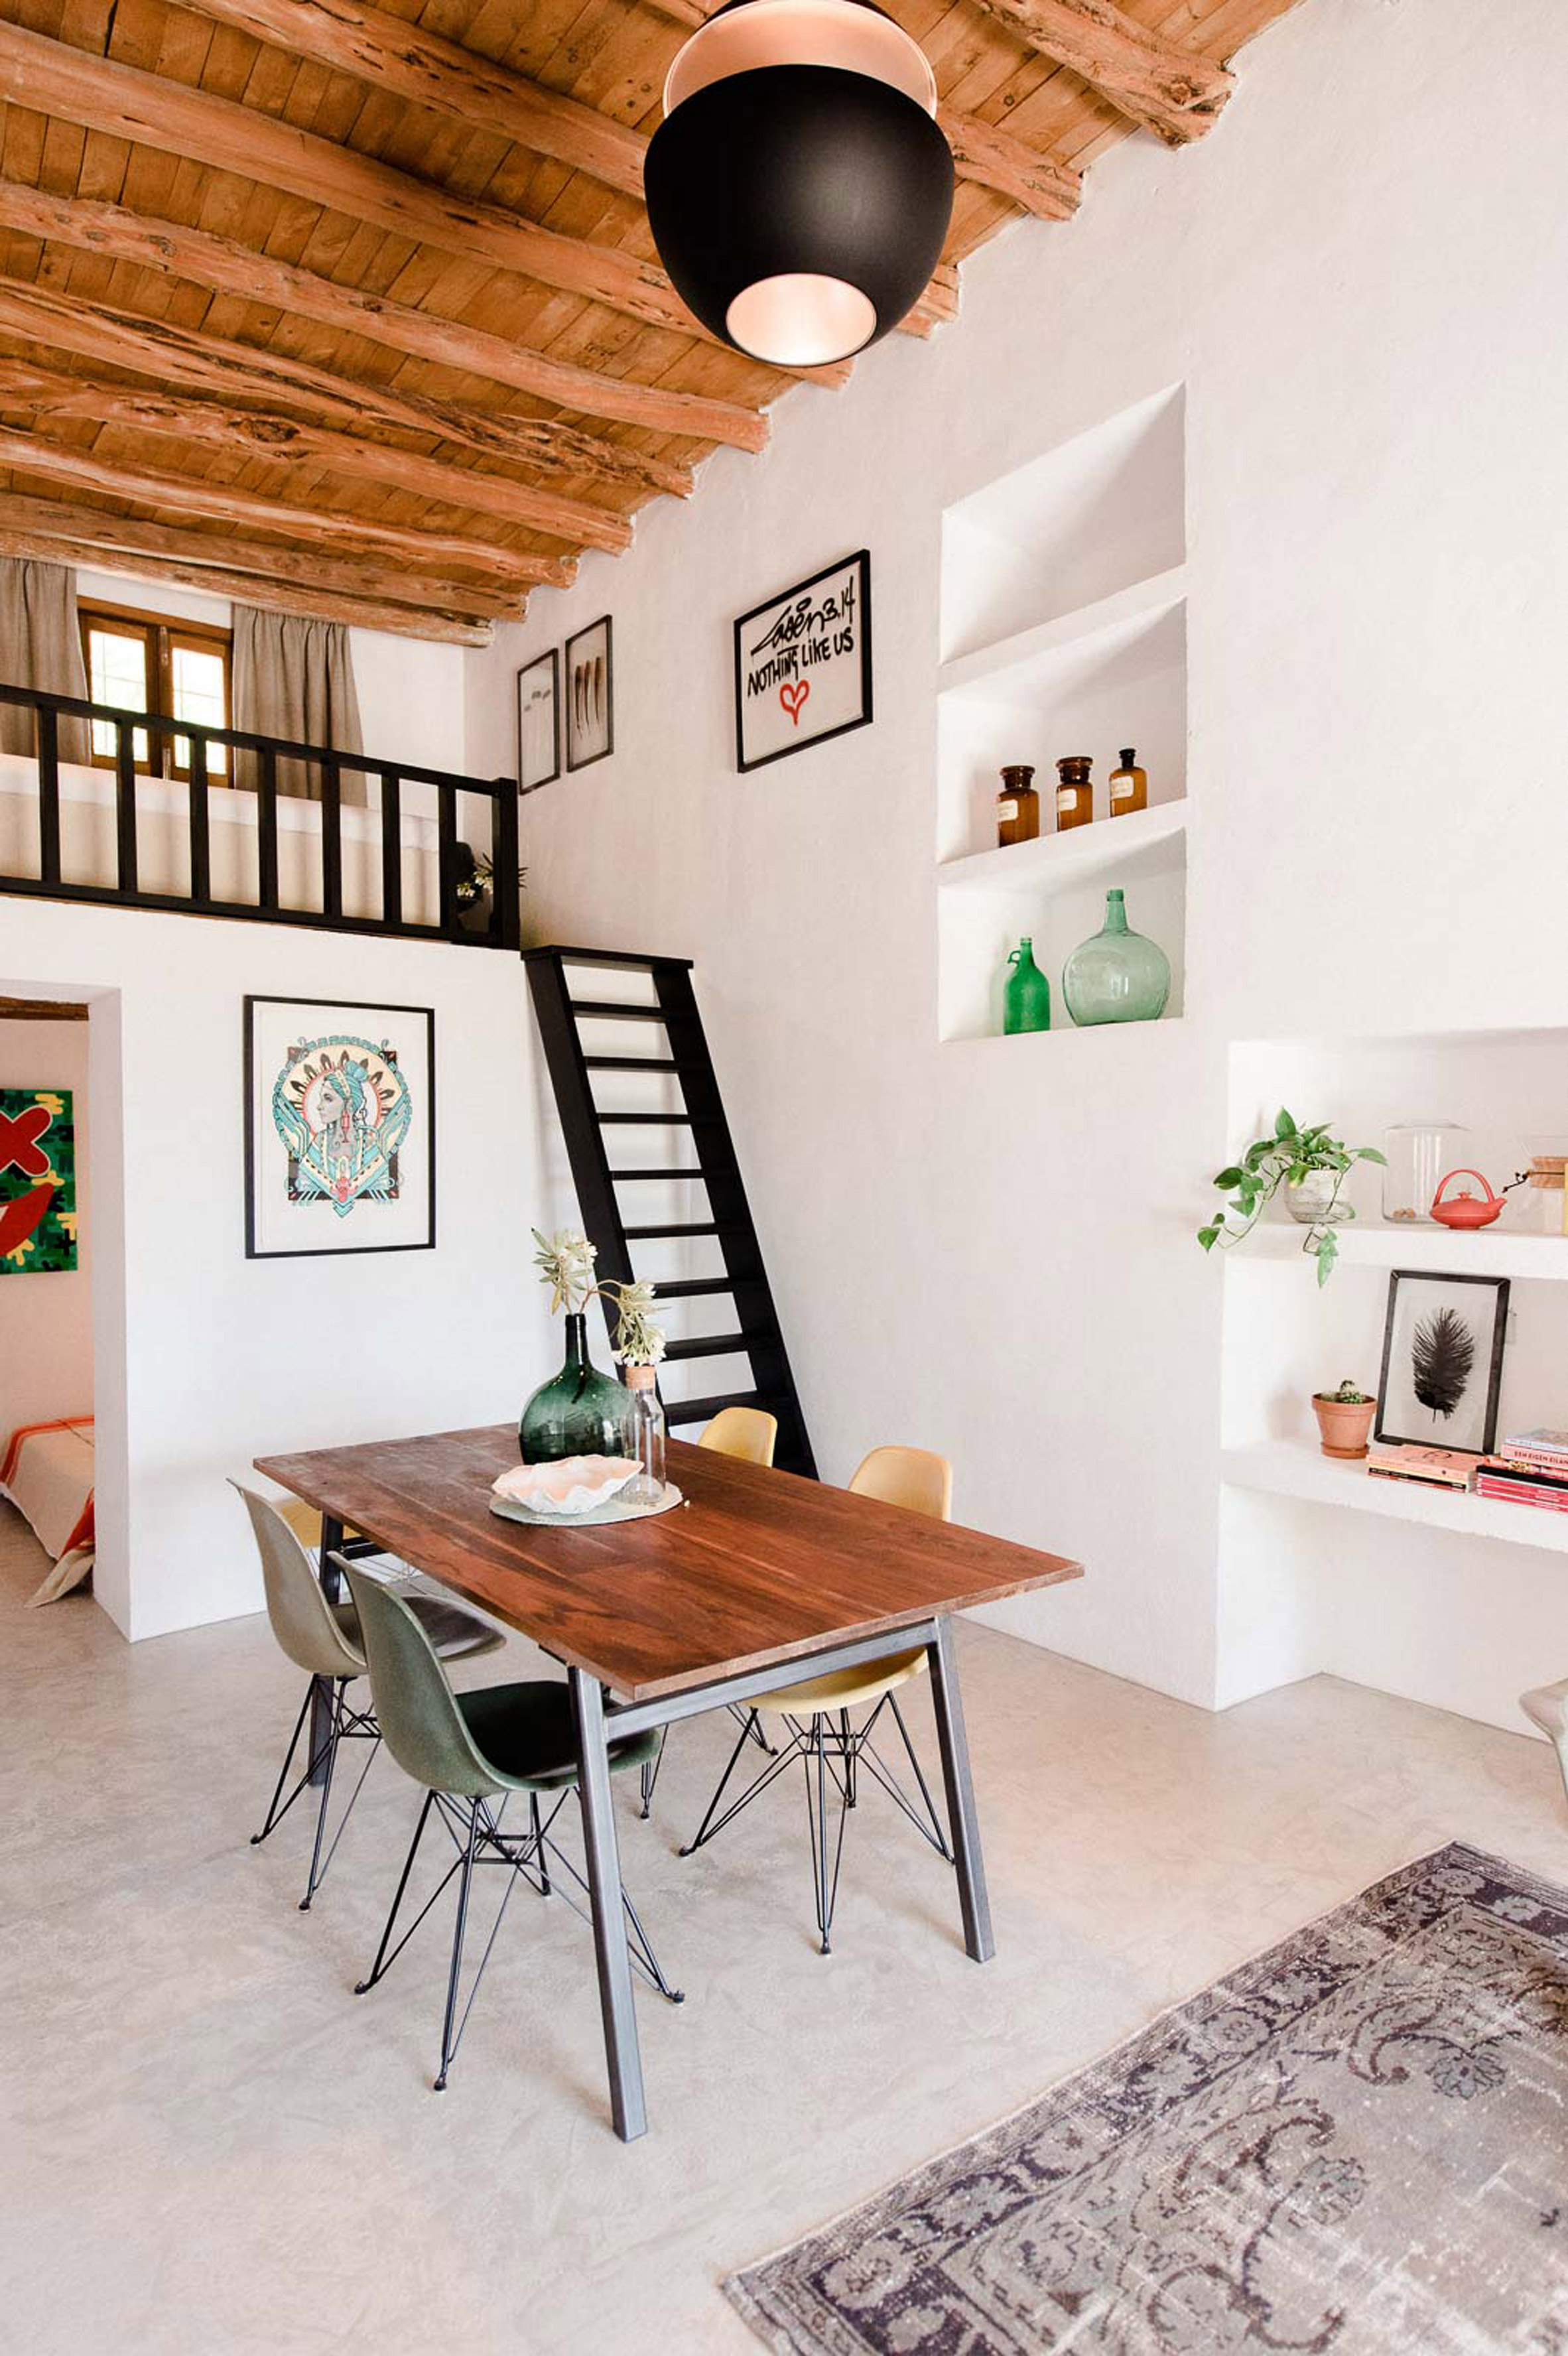 2. Transformation from stable to guesthouse in Ibiza by Standard Studio - Transformation from stable to guesthouse in Ibiza by Standard Studio